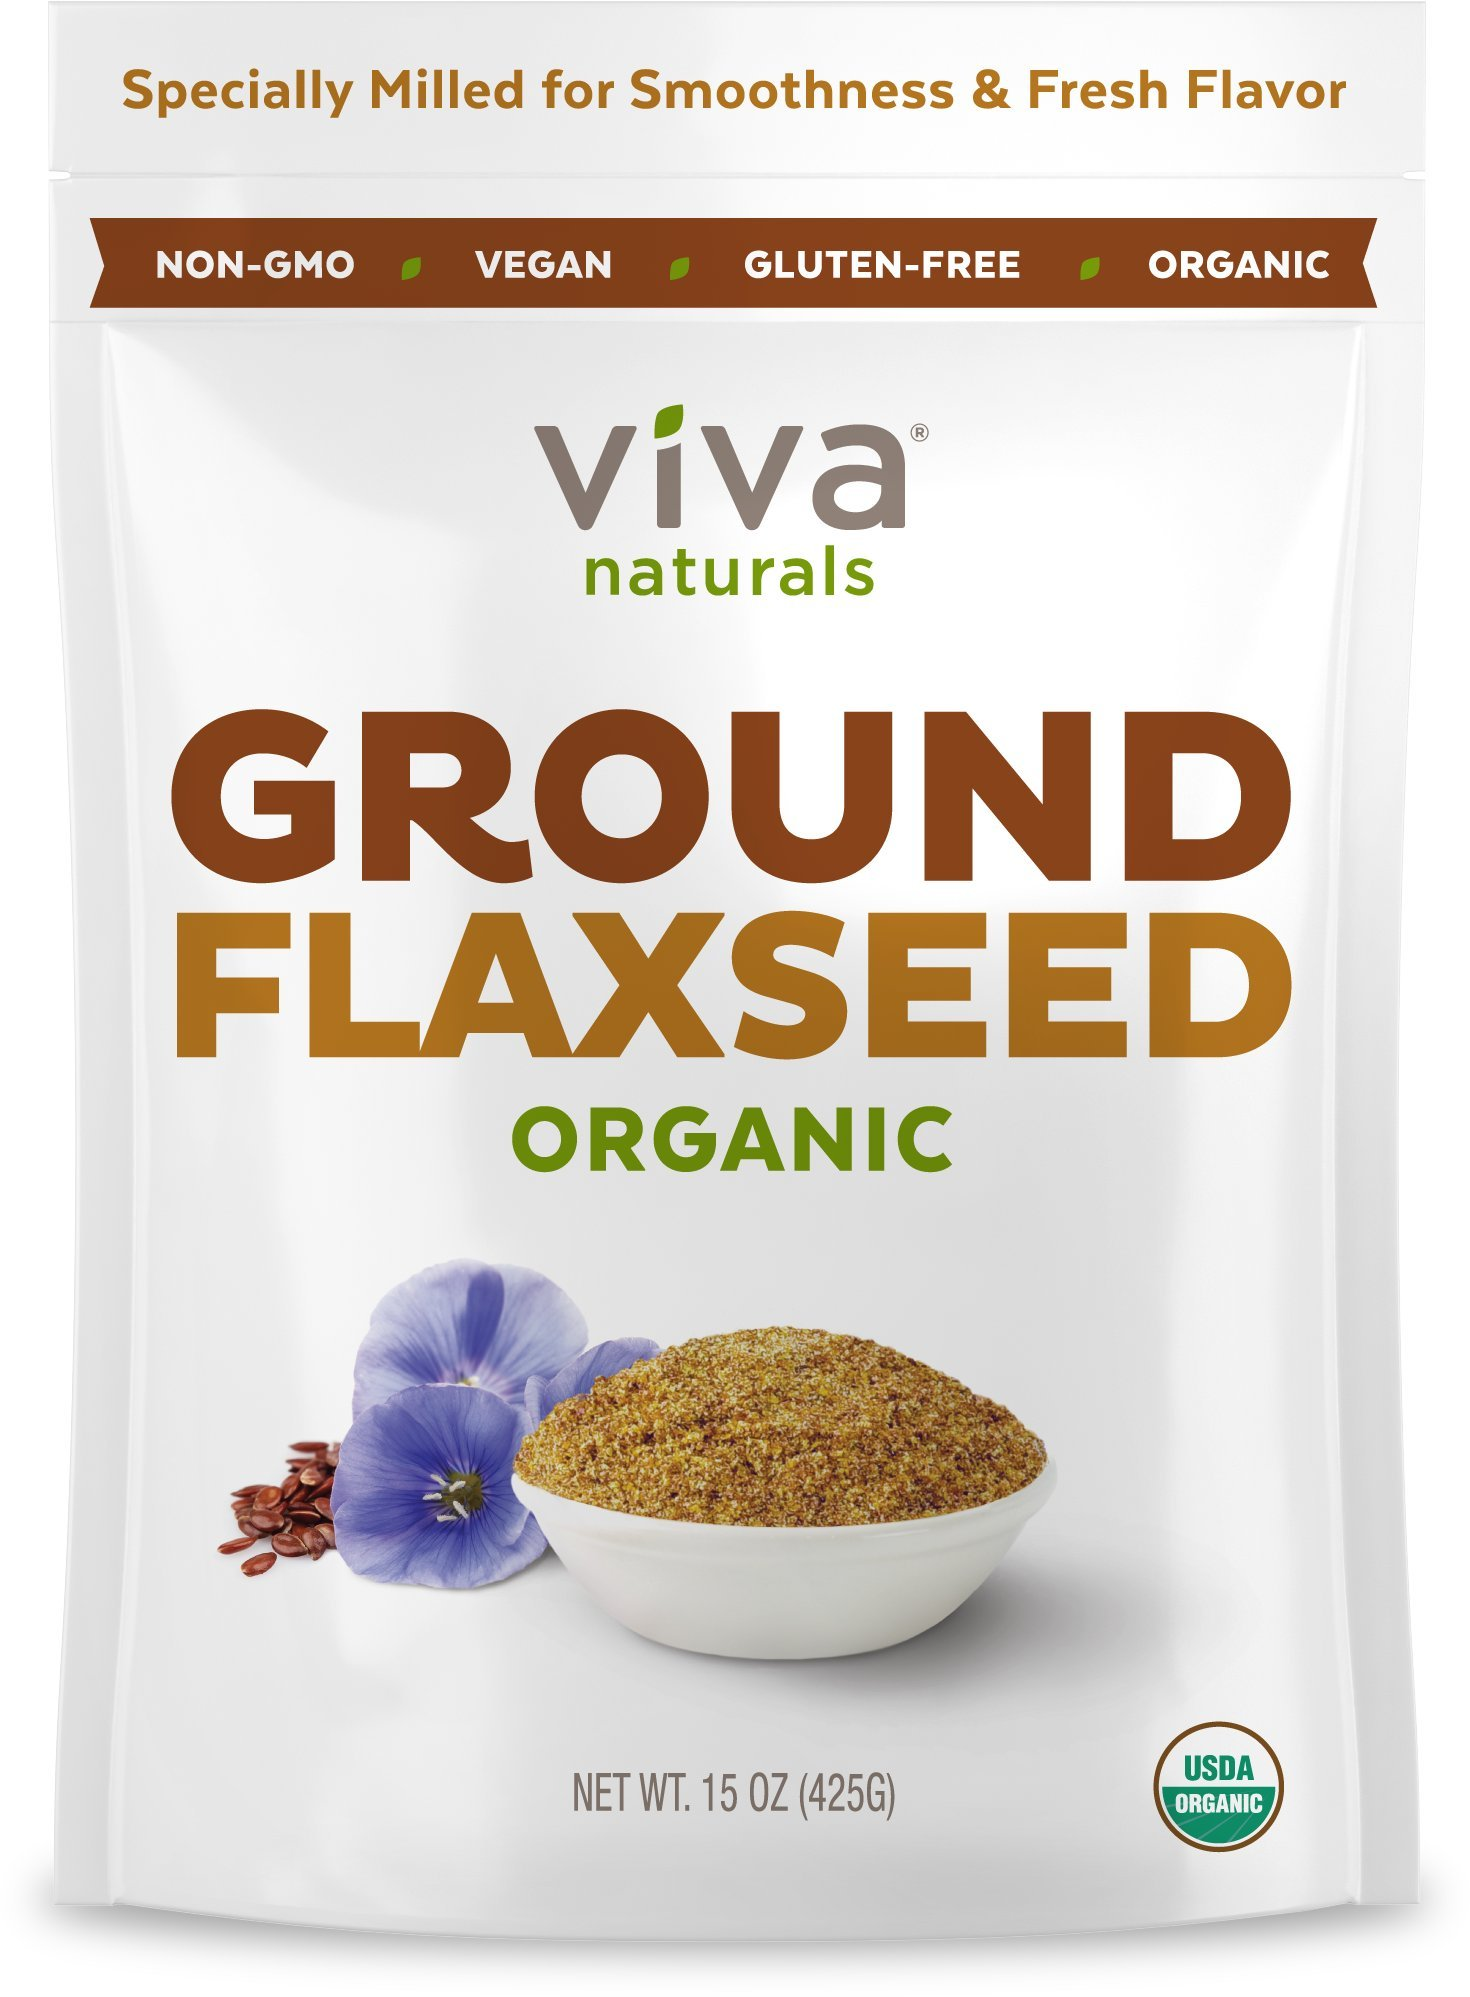 Viva Naturals Organic Ground Flax Seed, 15 oz - Specially Cold-milled Using Proprietary Technology for Optimal Smoothness and Freshness